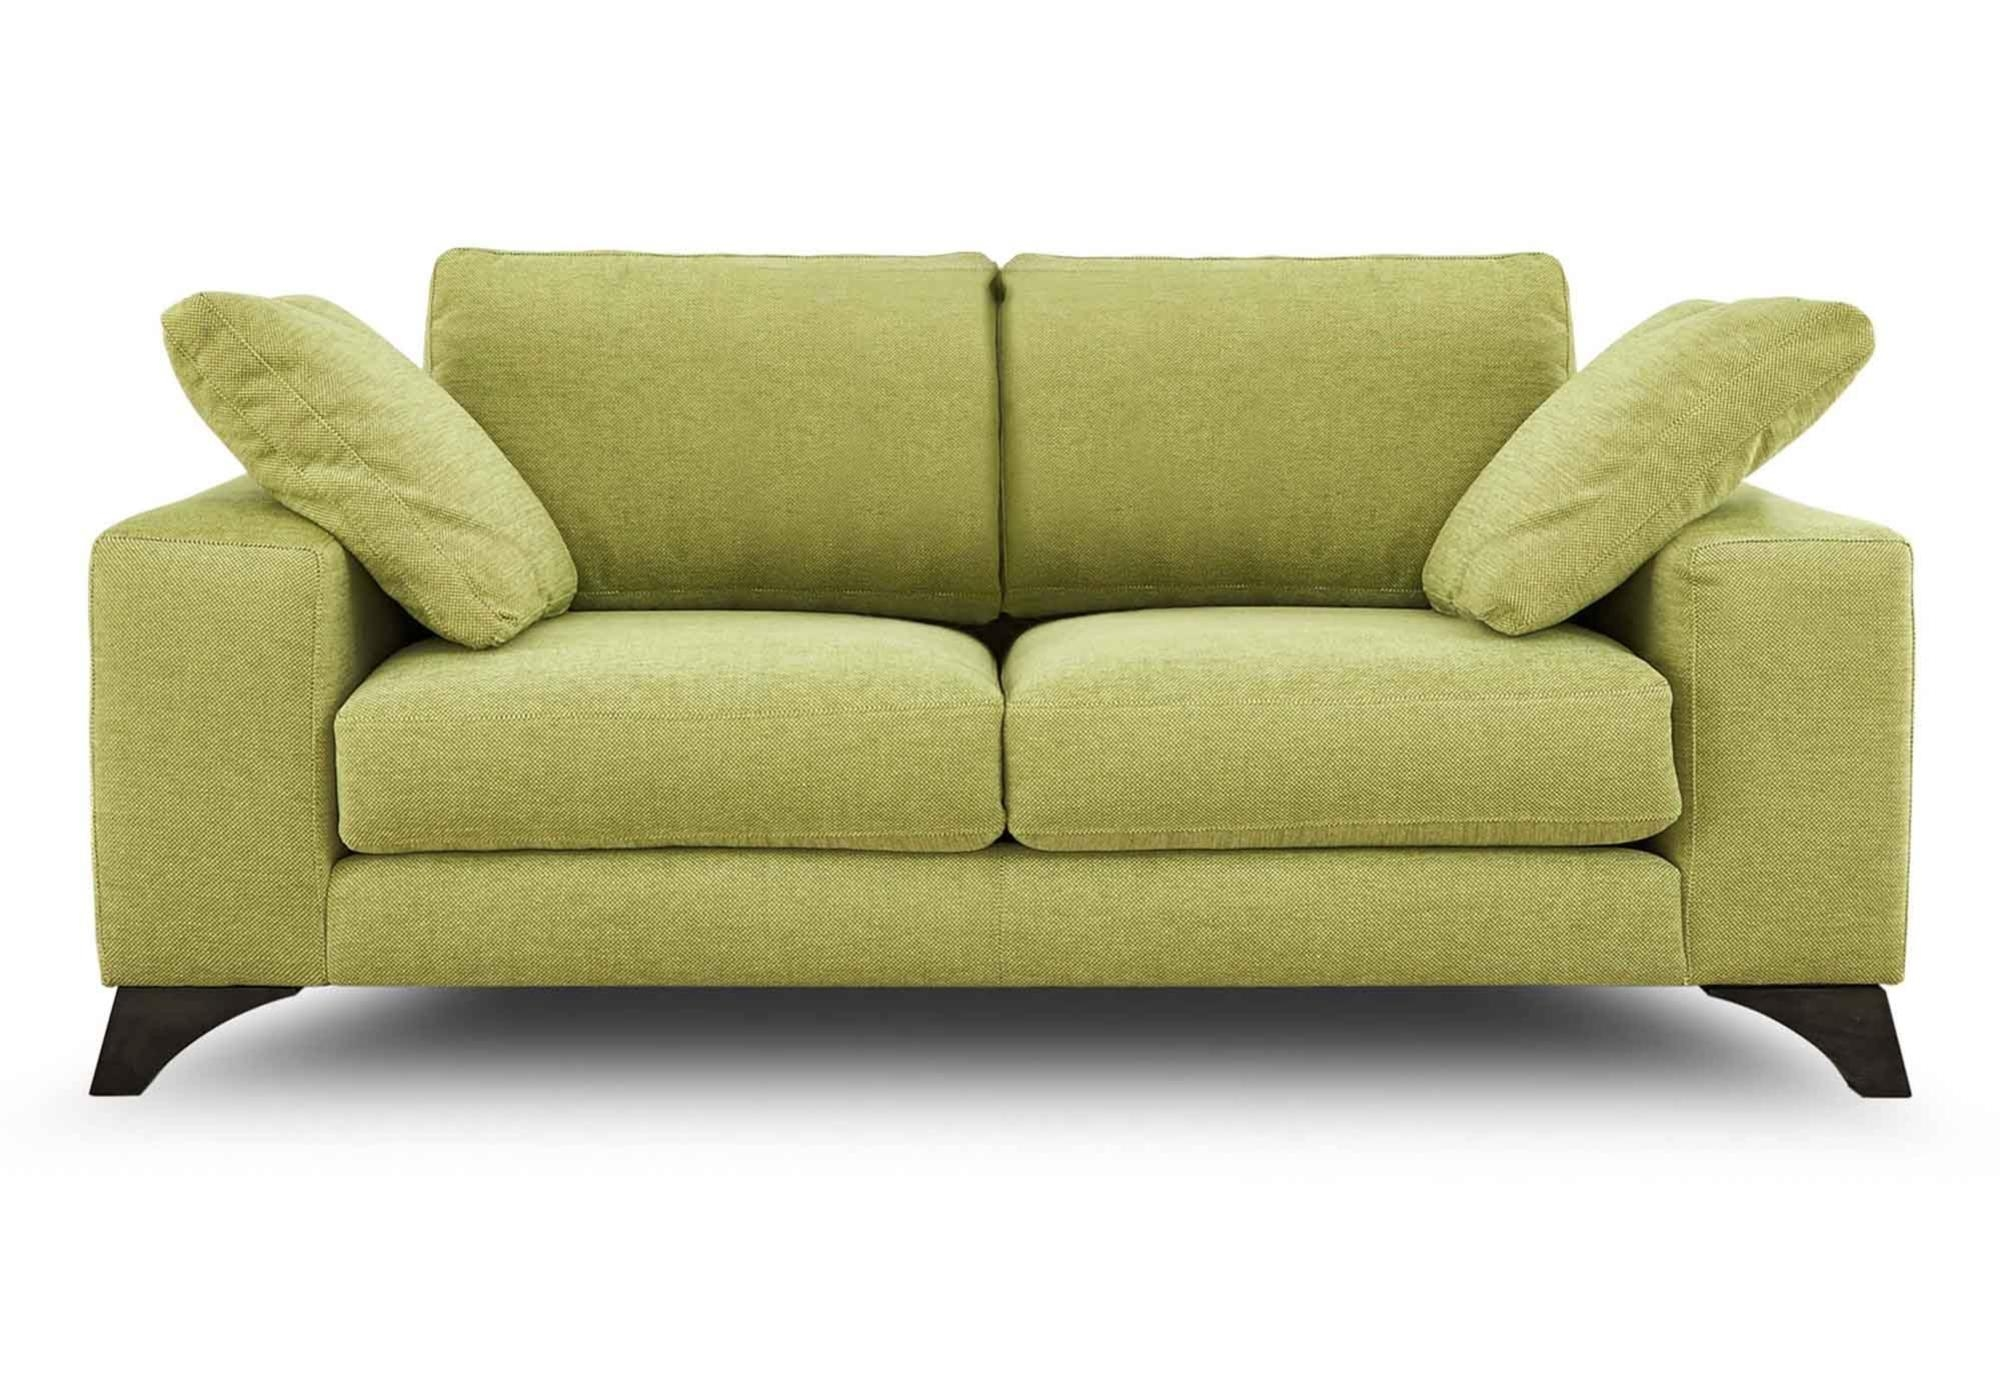 Chartreuse Sofa With Design Ideas 27453 | Kengire Regarding Chartreuse Sofas (Image 12 of 20)